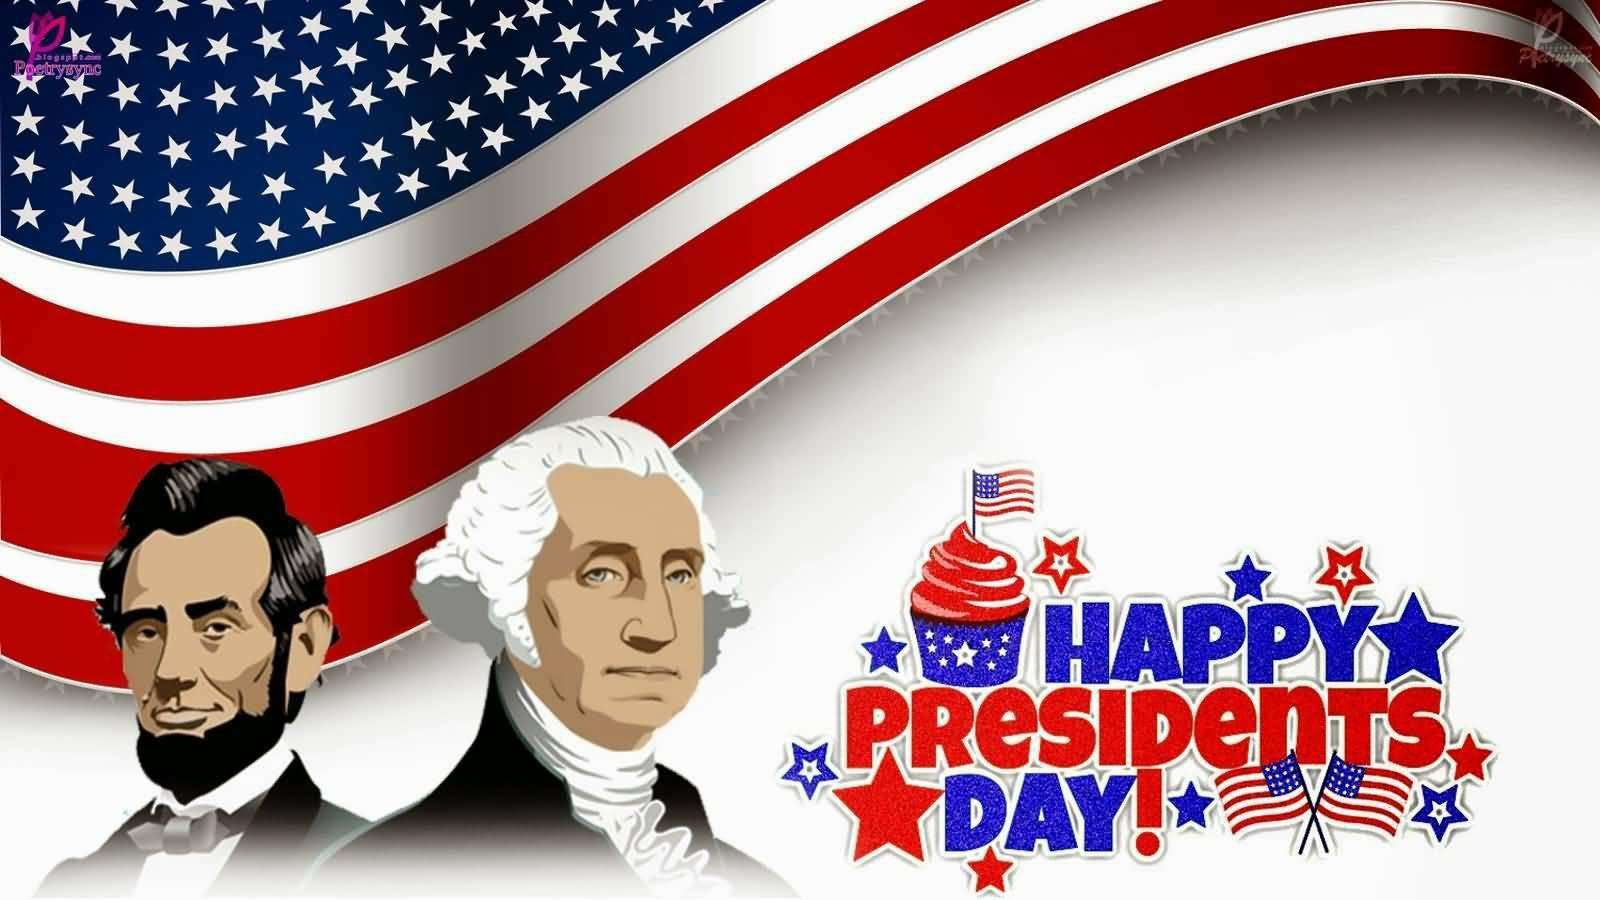 Presidents Day Wishes Sweet Images